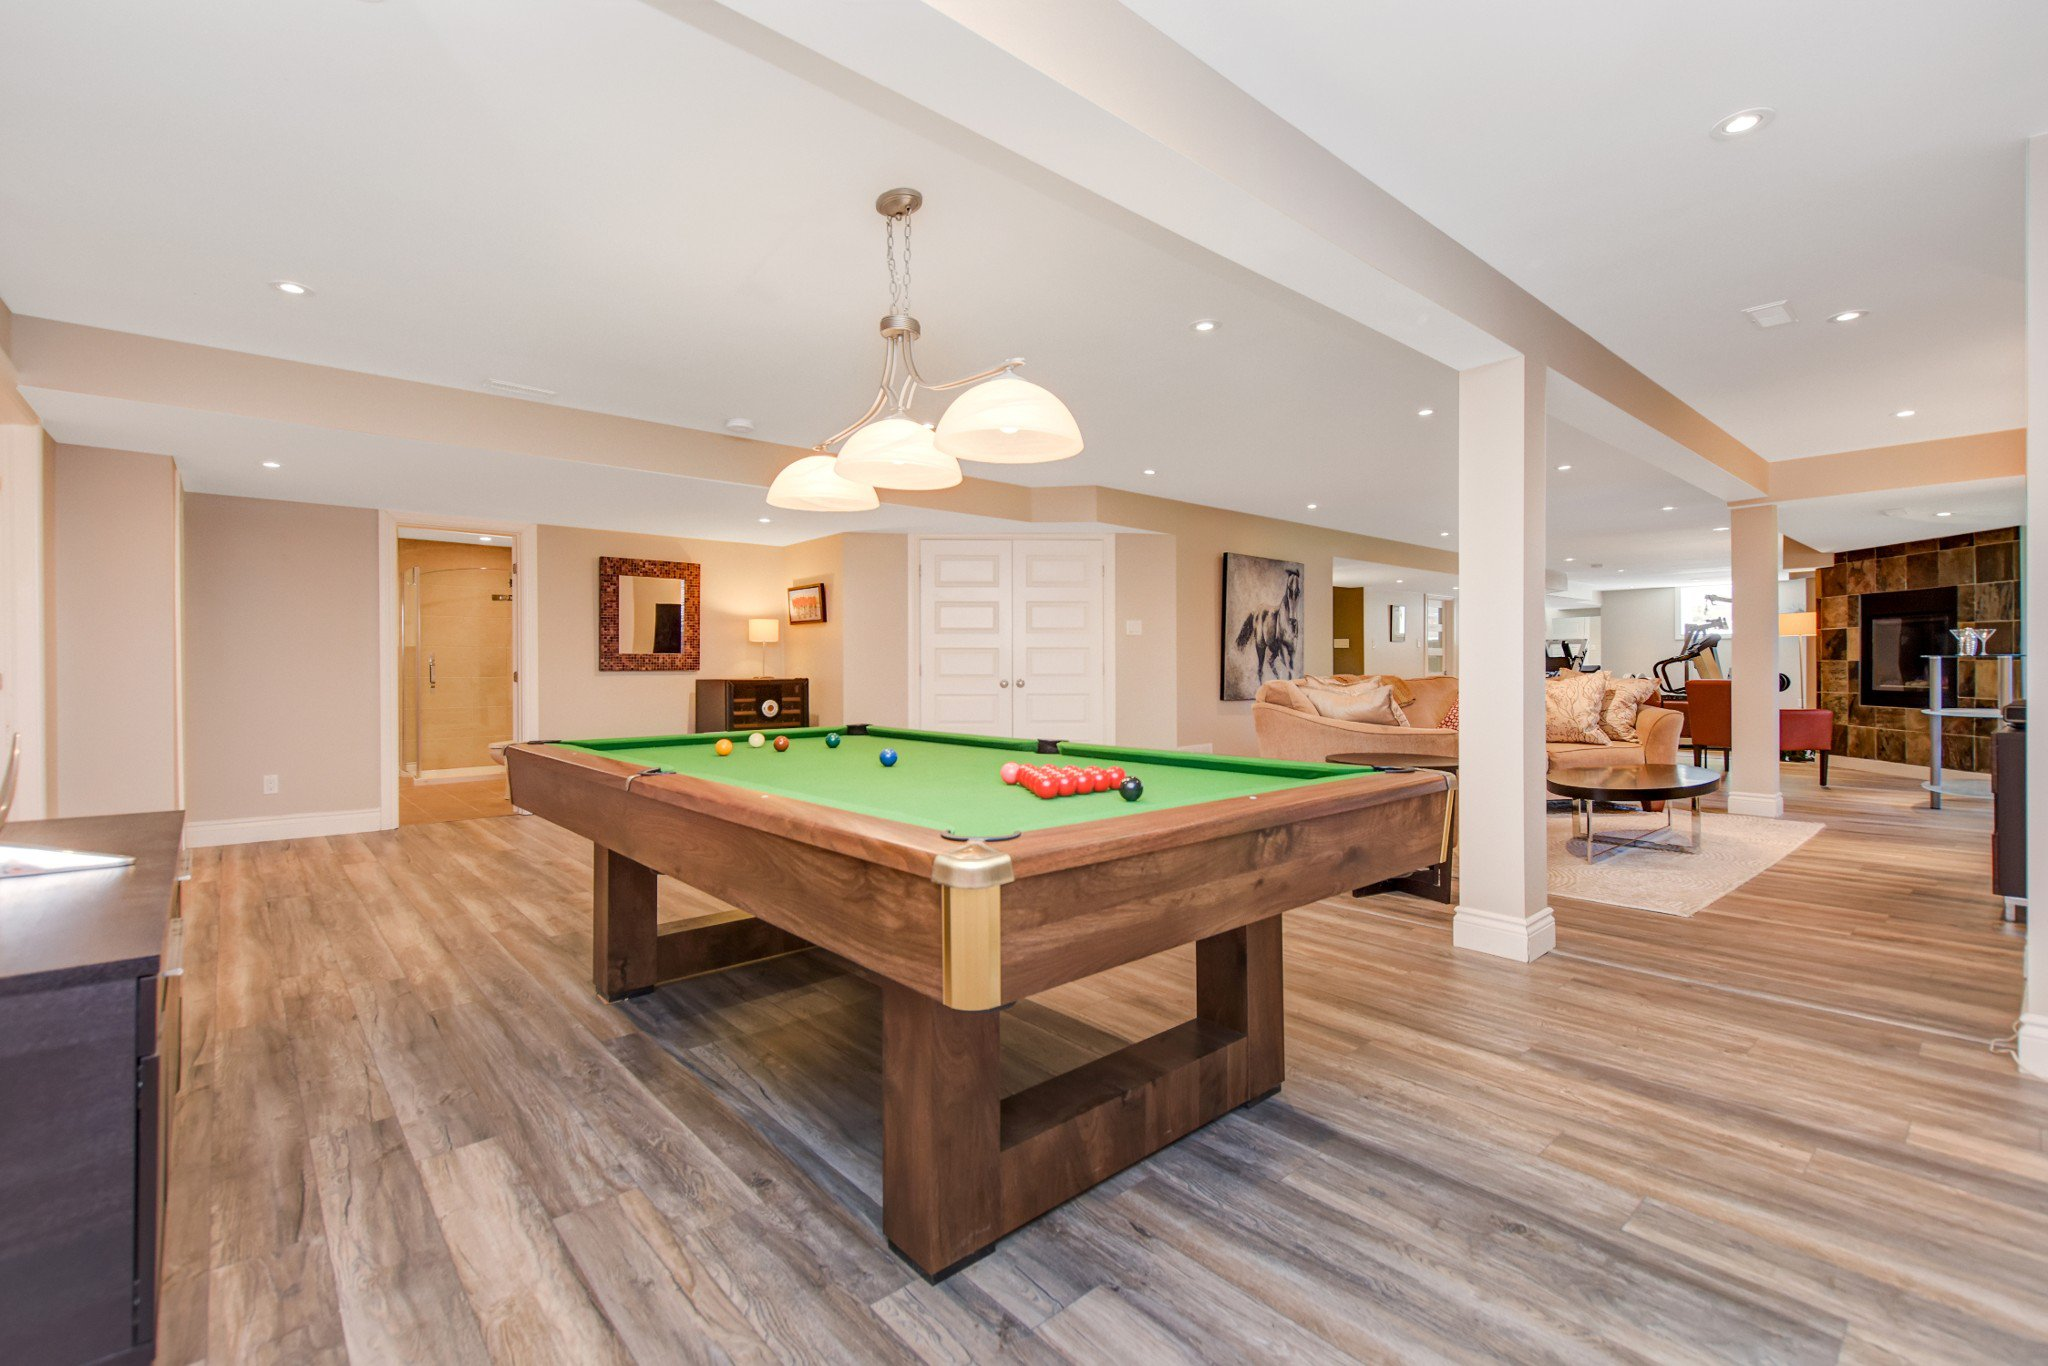 Photo 50: Photos: 1490 REINDEER WAY.: Greely House for sale (Ottawa)  : MLS®# 1109530